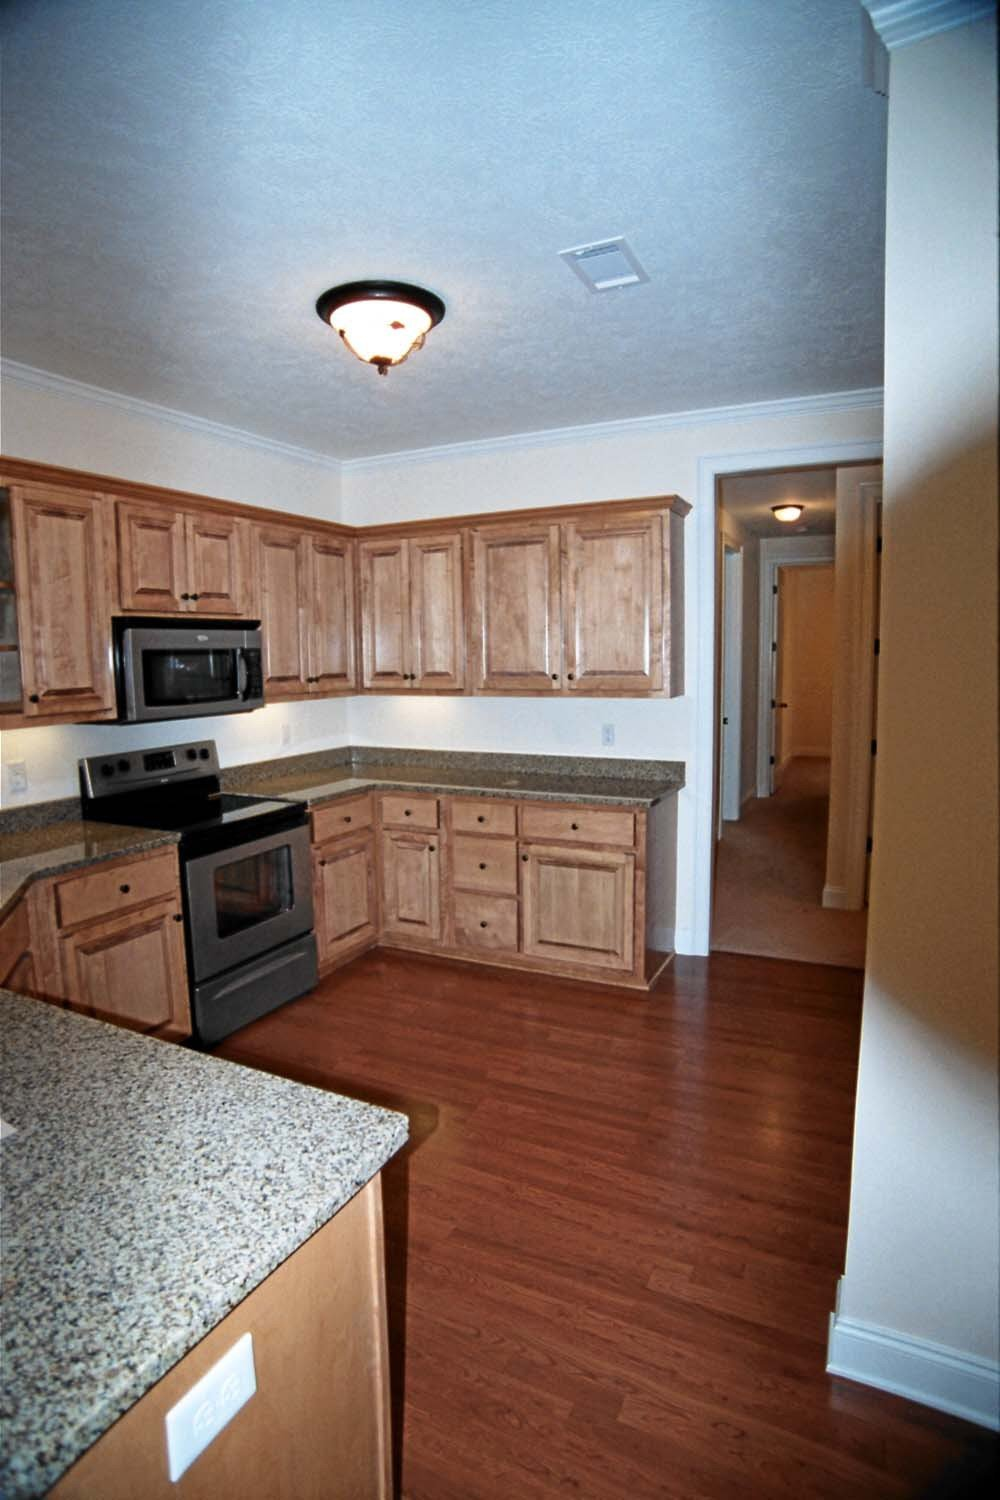 Used kitchen cabinets augusta ga - New Home Construction Augusta Ga Sunroom Construction Kitchen Cabinets